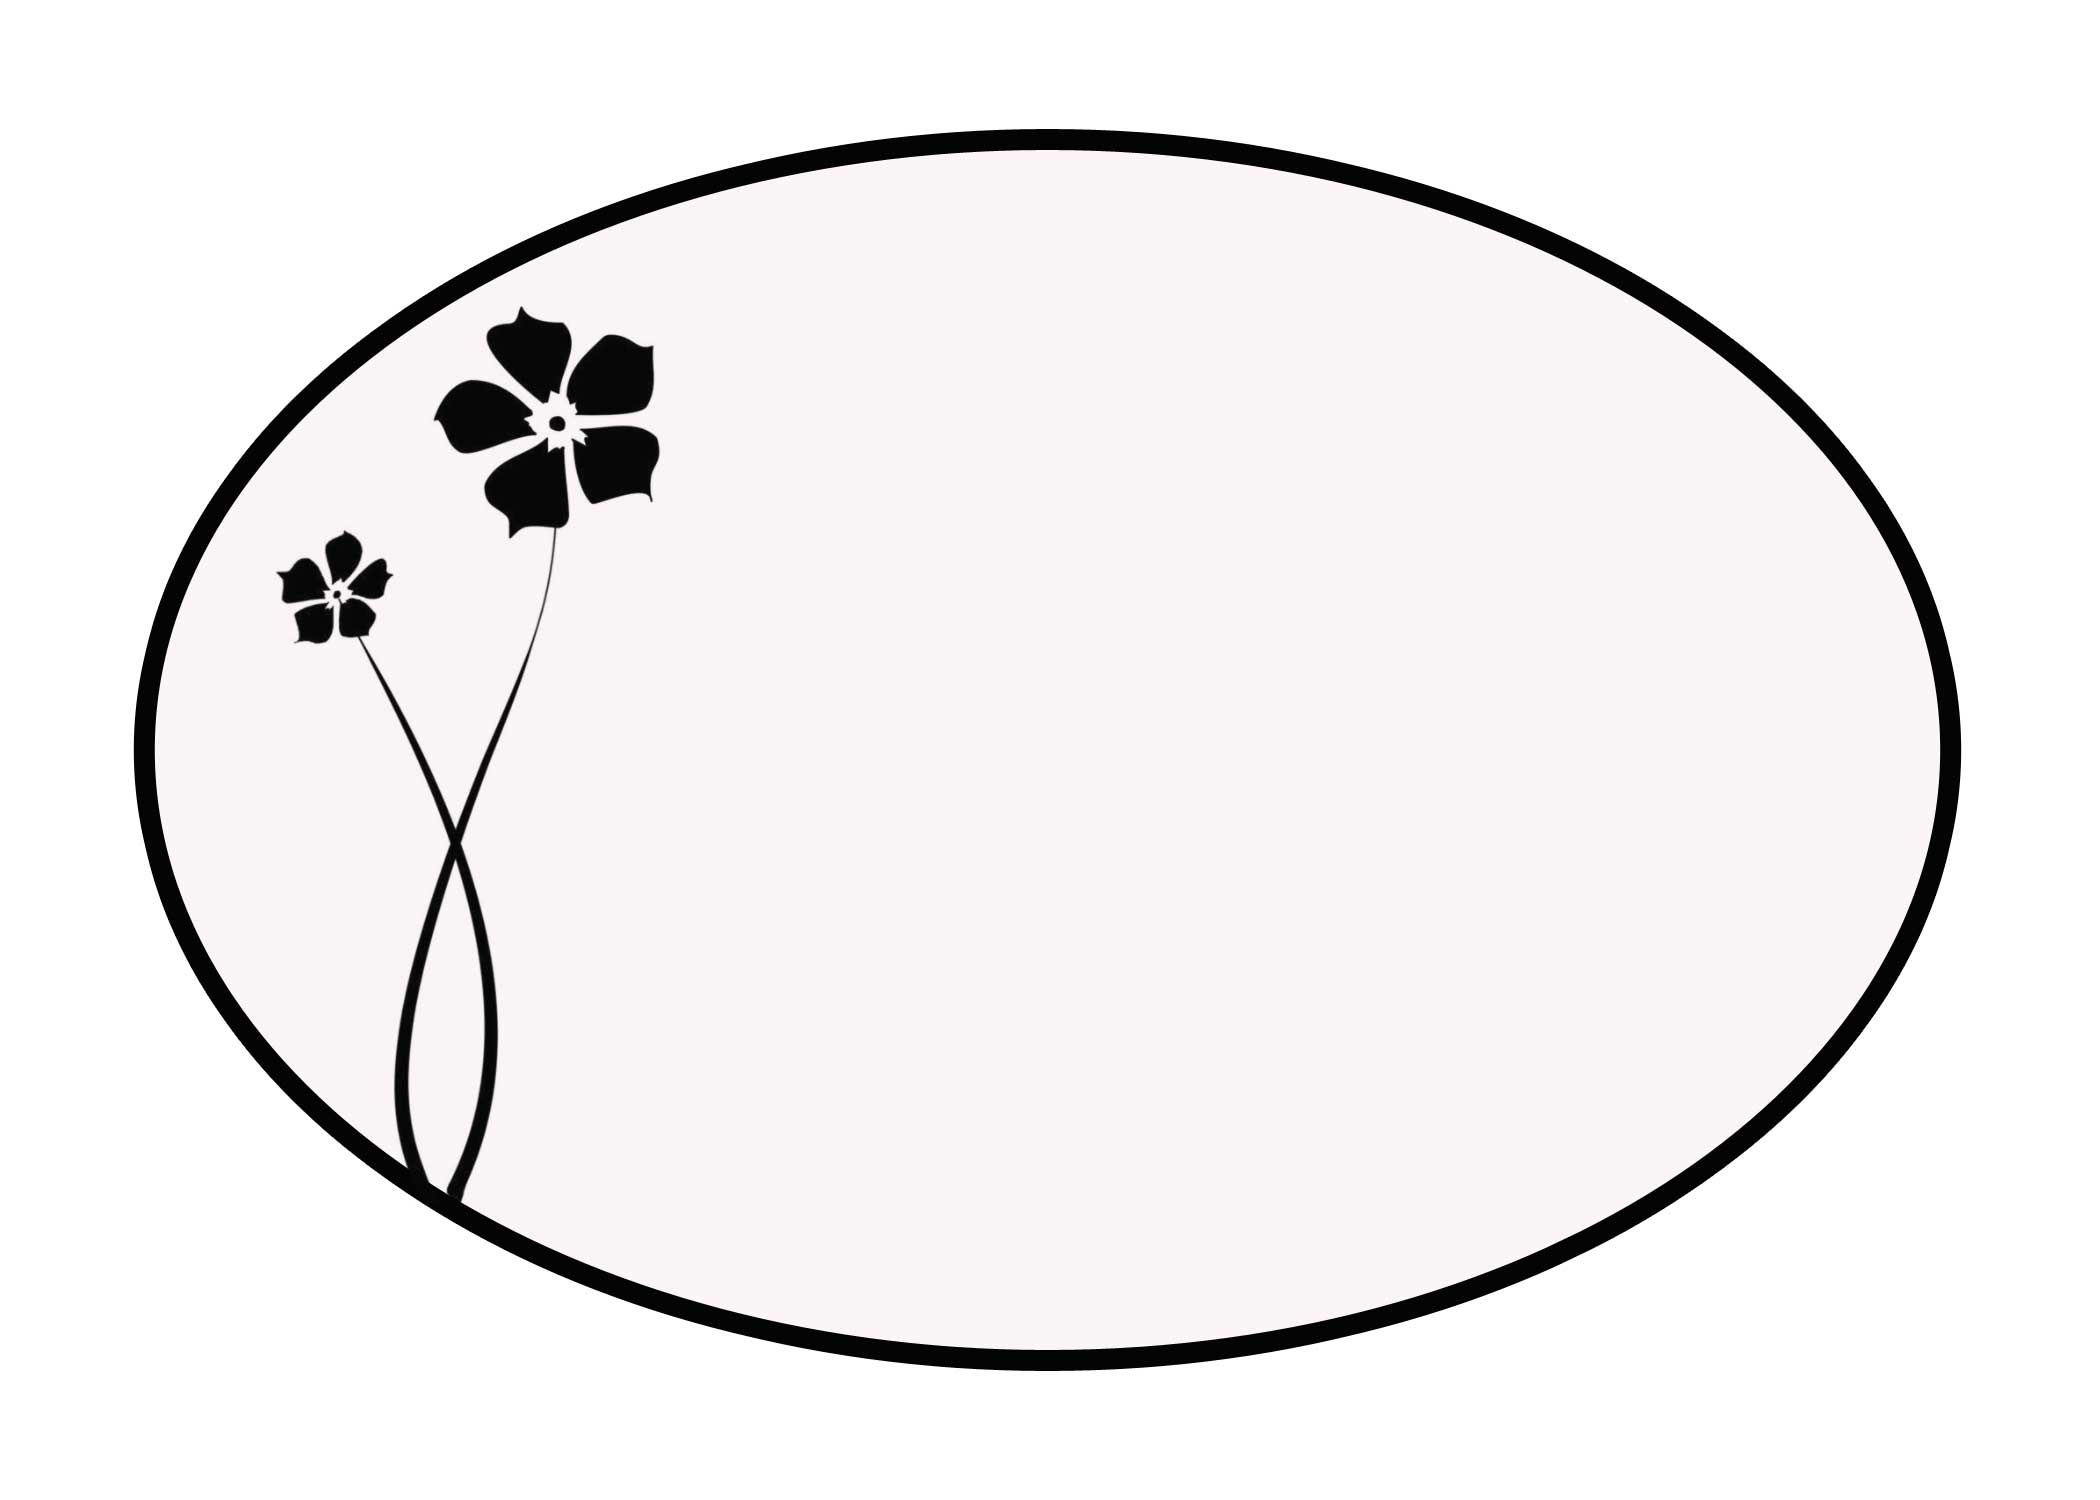 Template clipart.